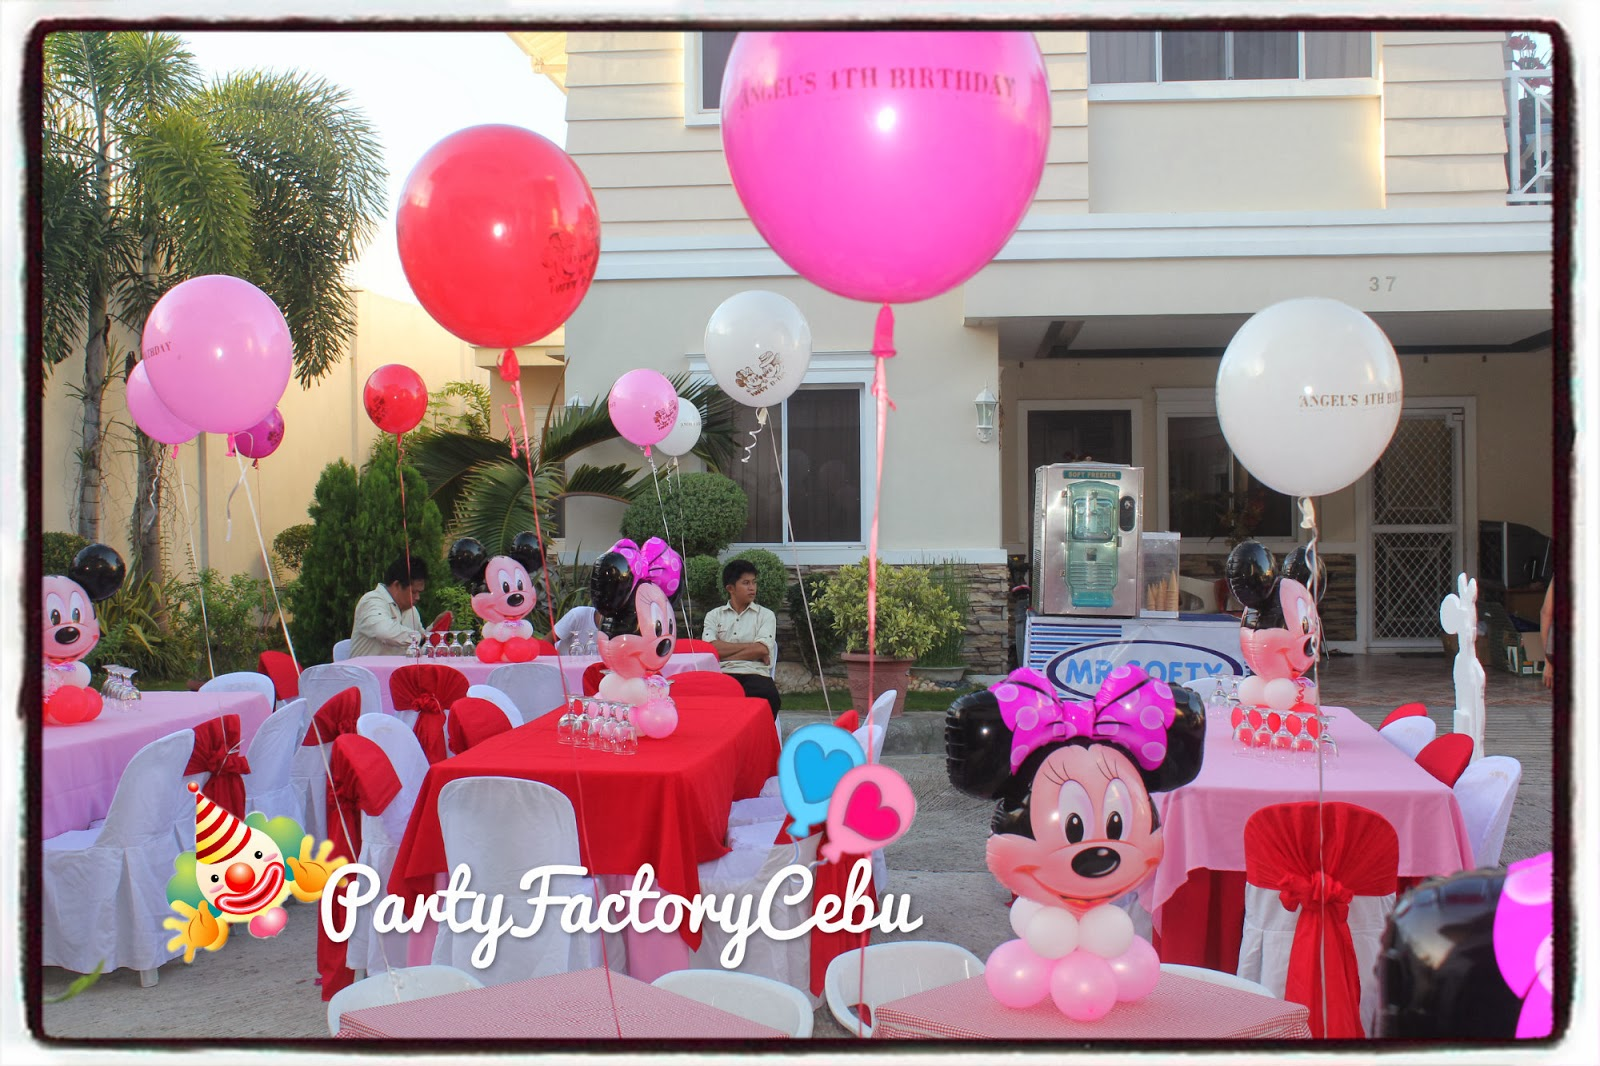 Welcome To Partyfactory Cebu Angel S 4th Birthday Bash